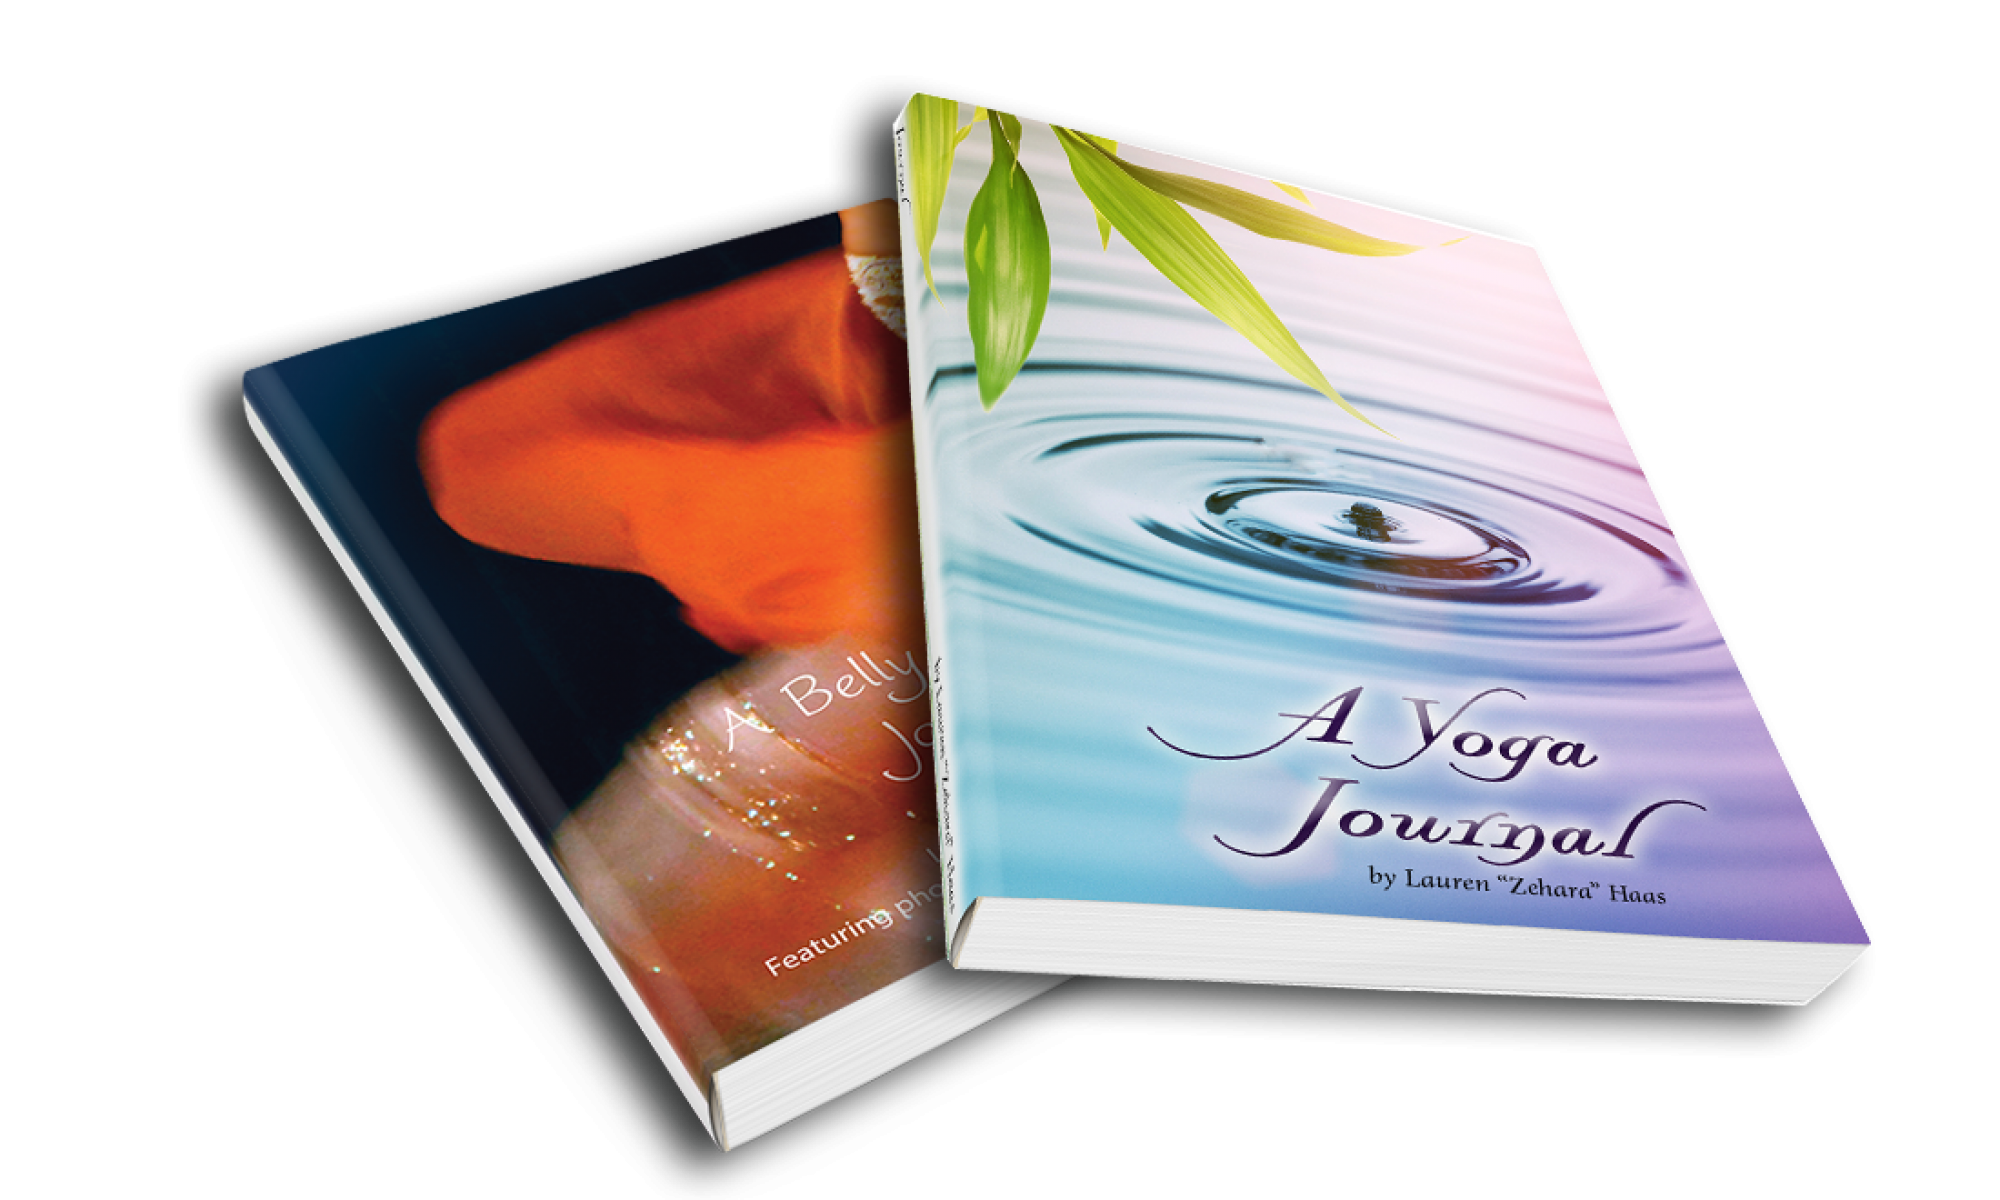 Lotus Arts Publishing